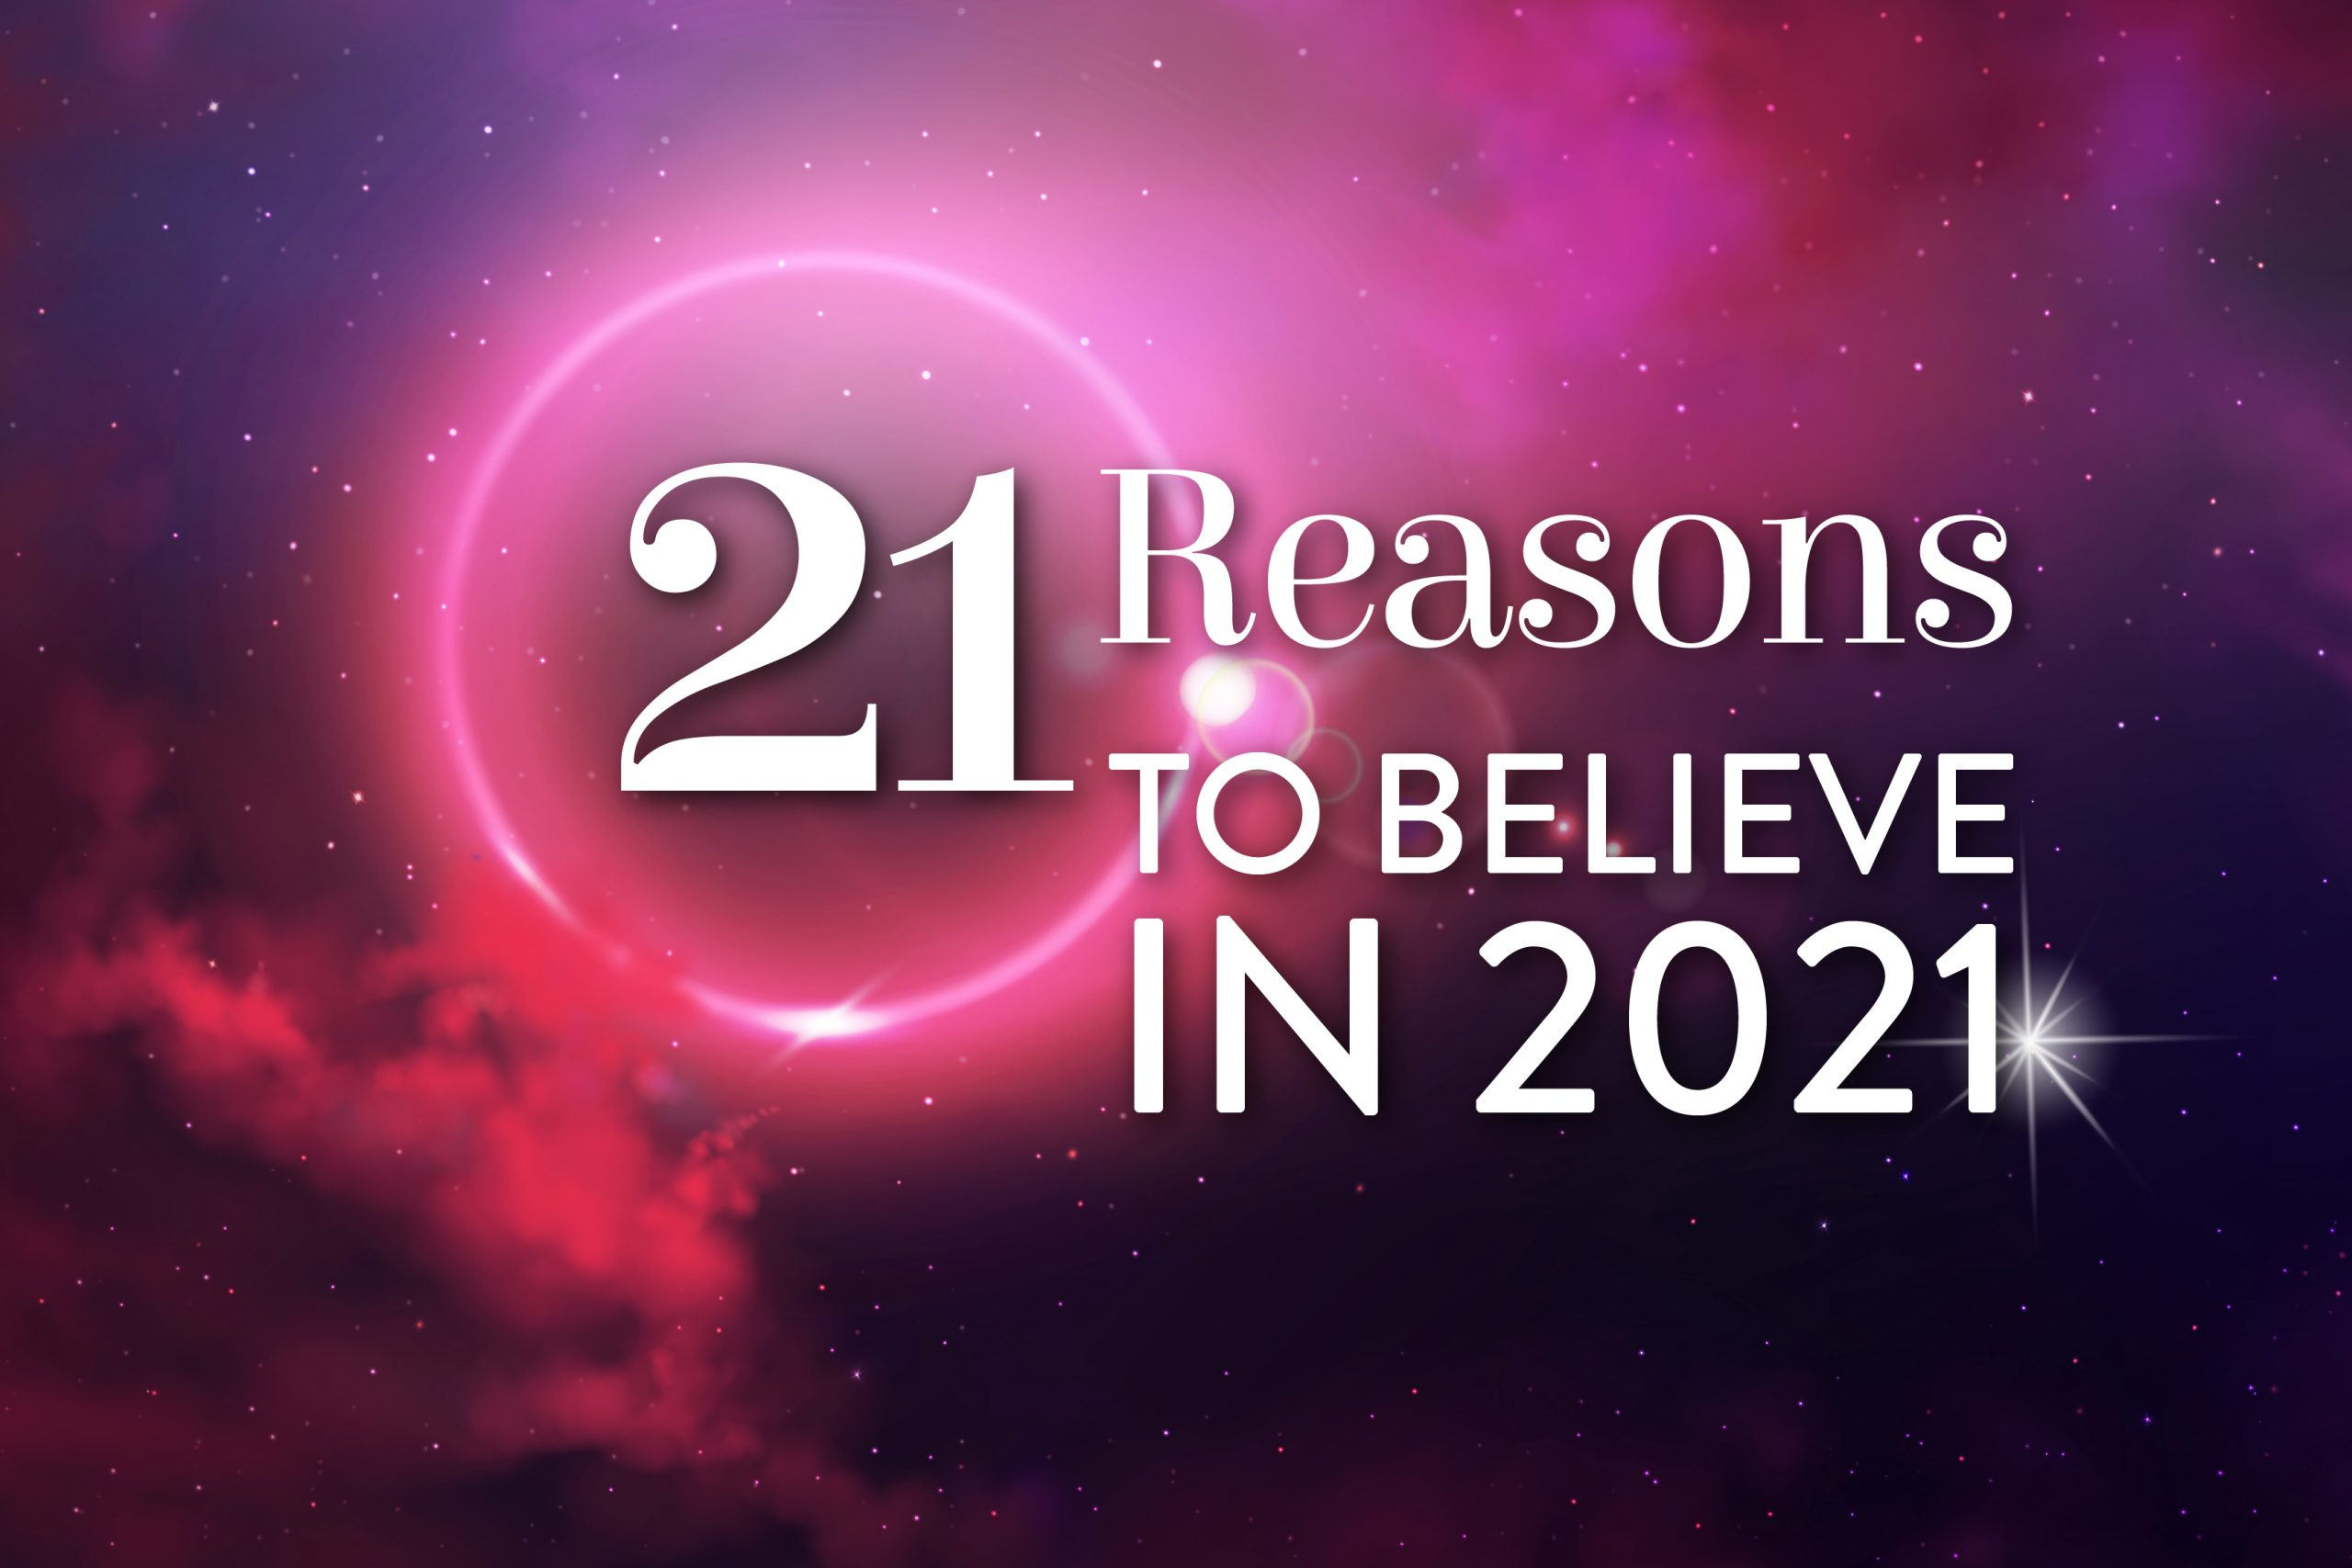 21 REASONS TO BELIEVE IN 2021